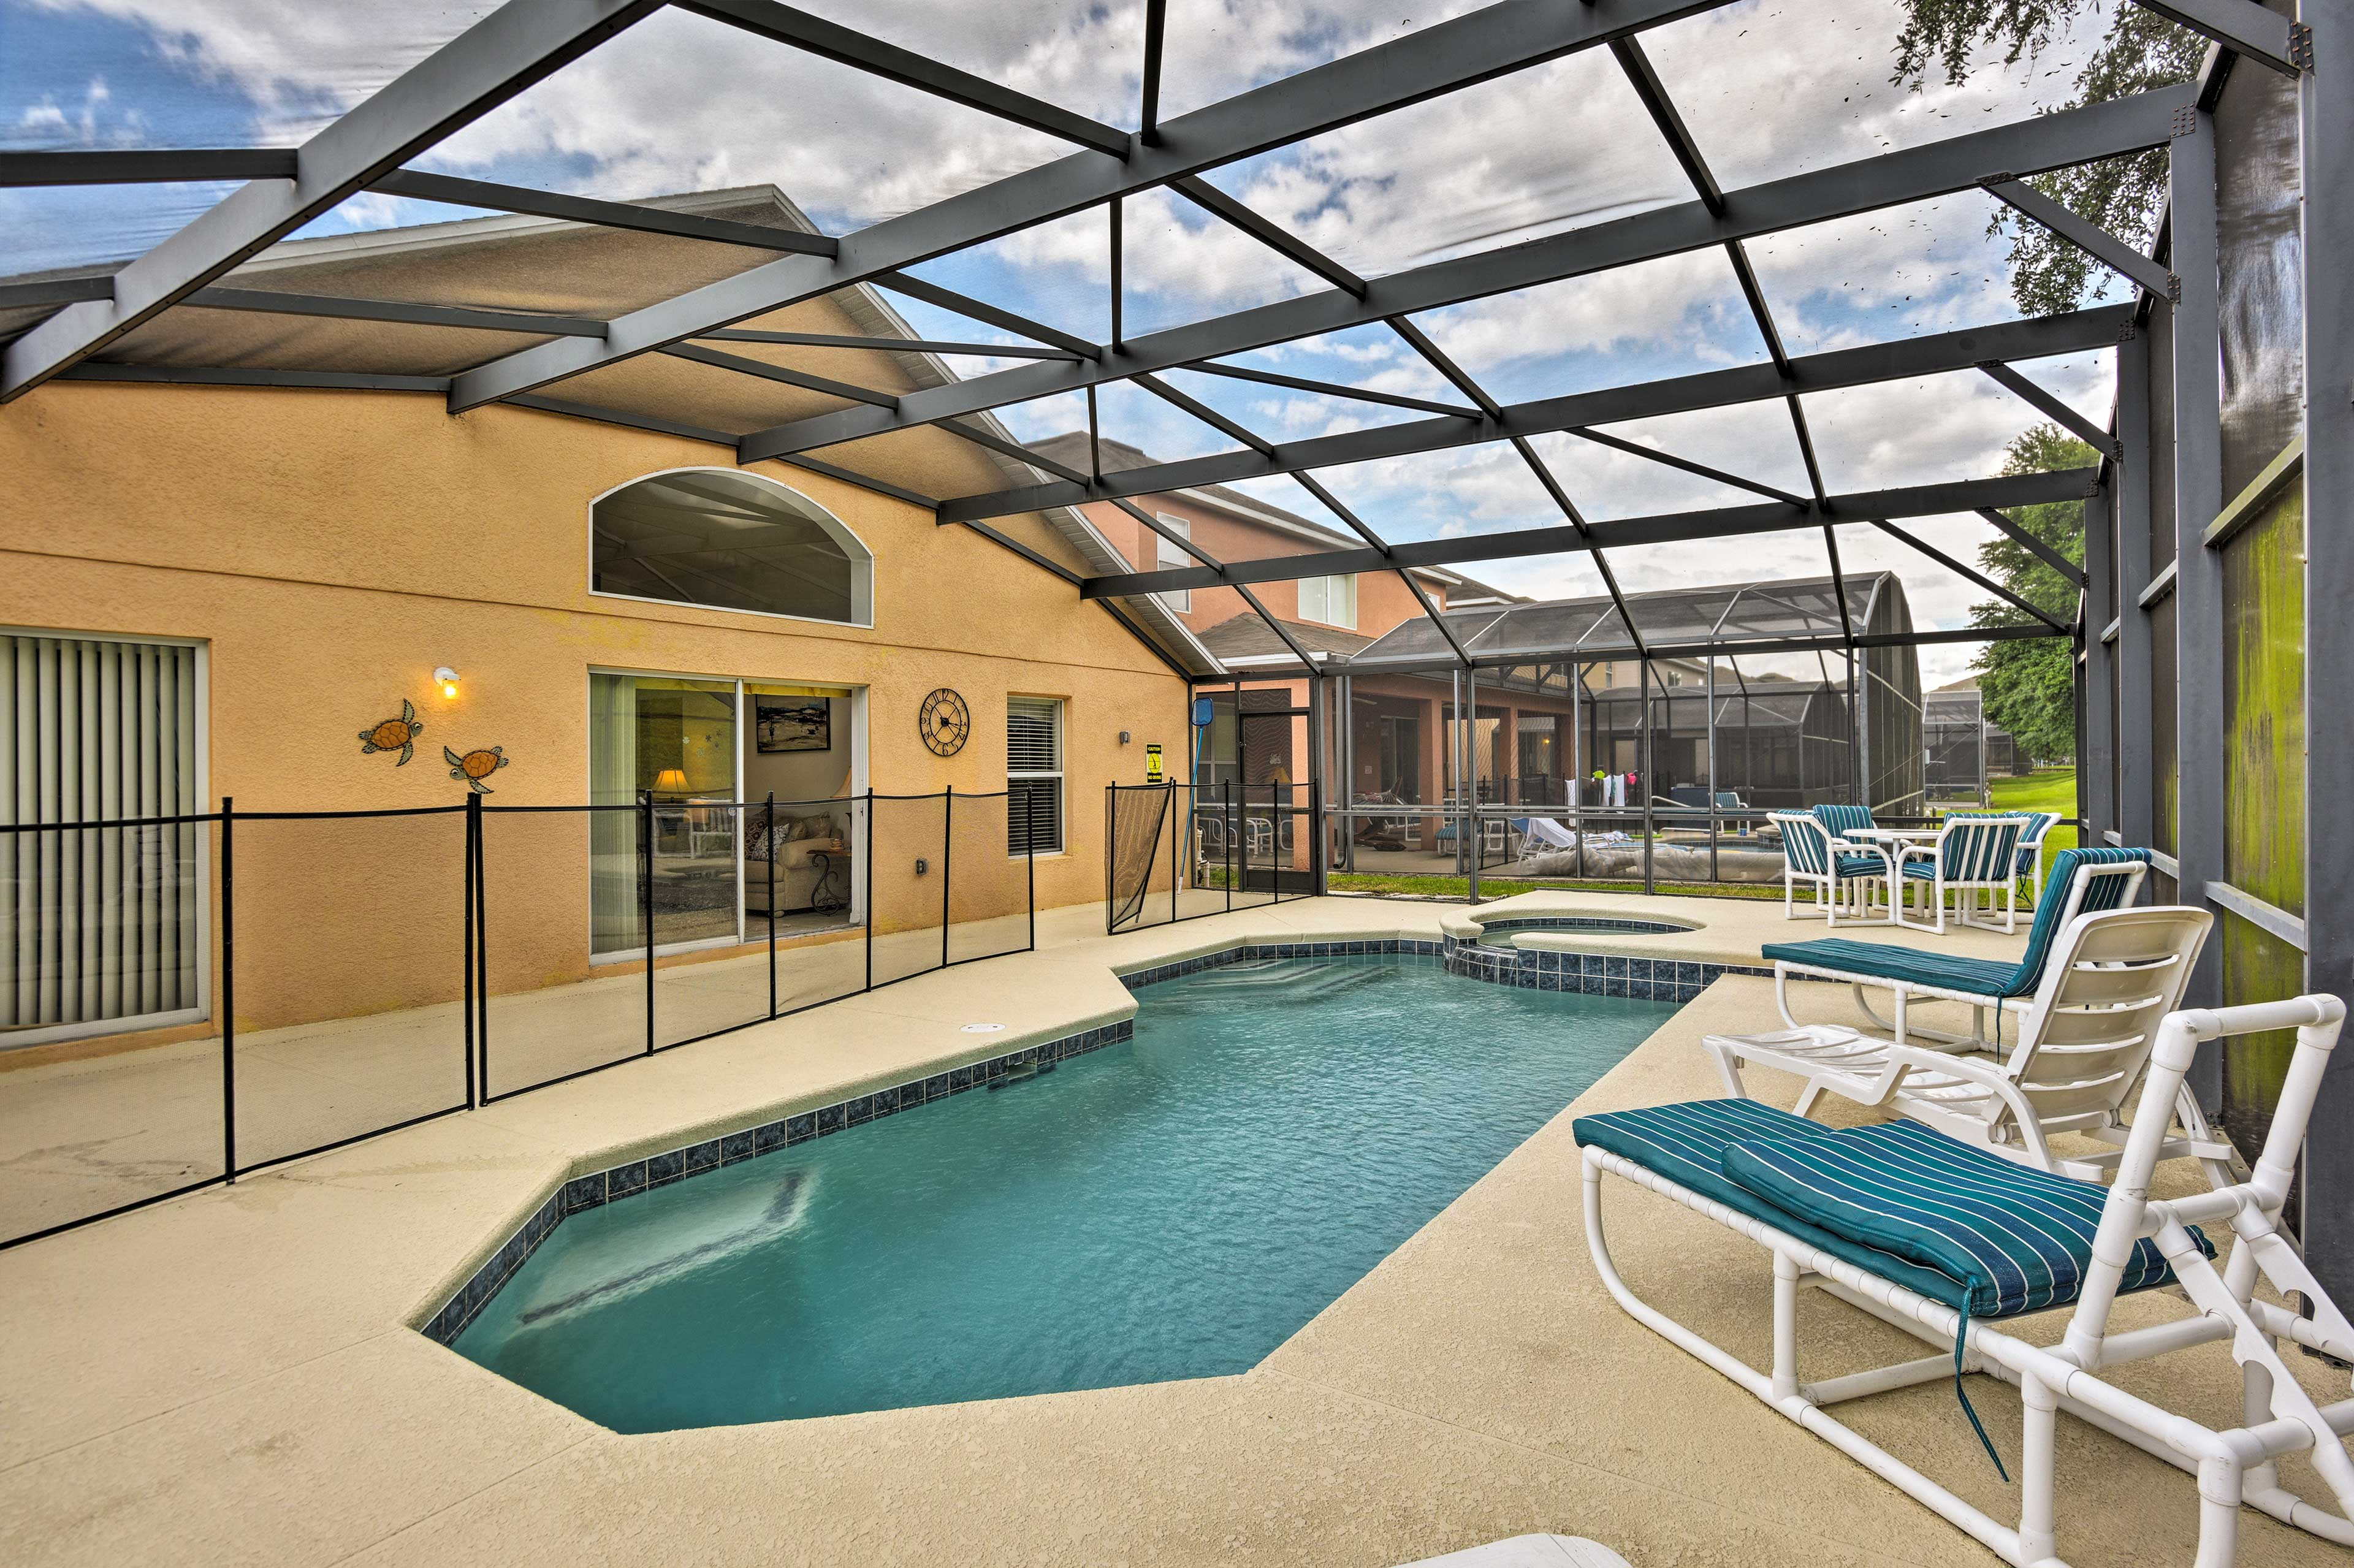 The screened-in pool area will be your favorite place to hang out.